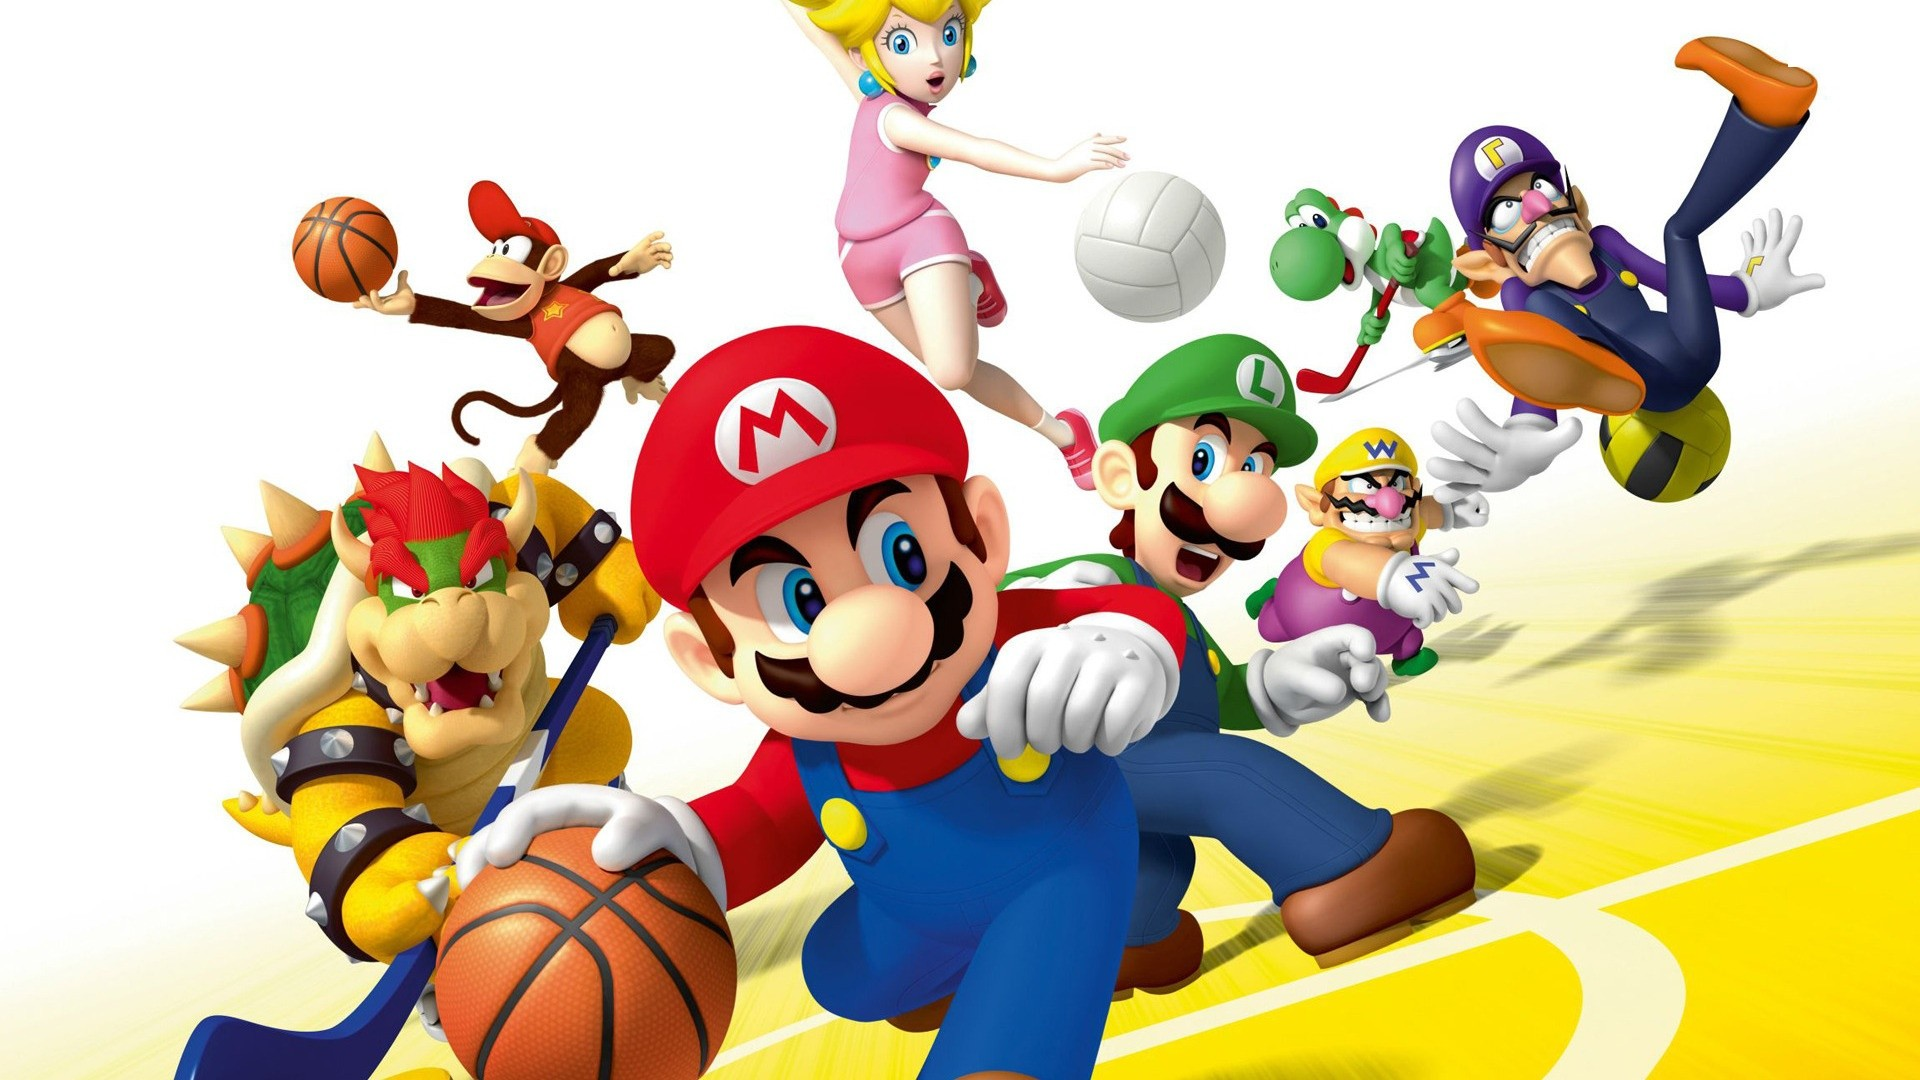 … mario sports mix wallhd download hd background wallpapers free …